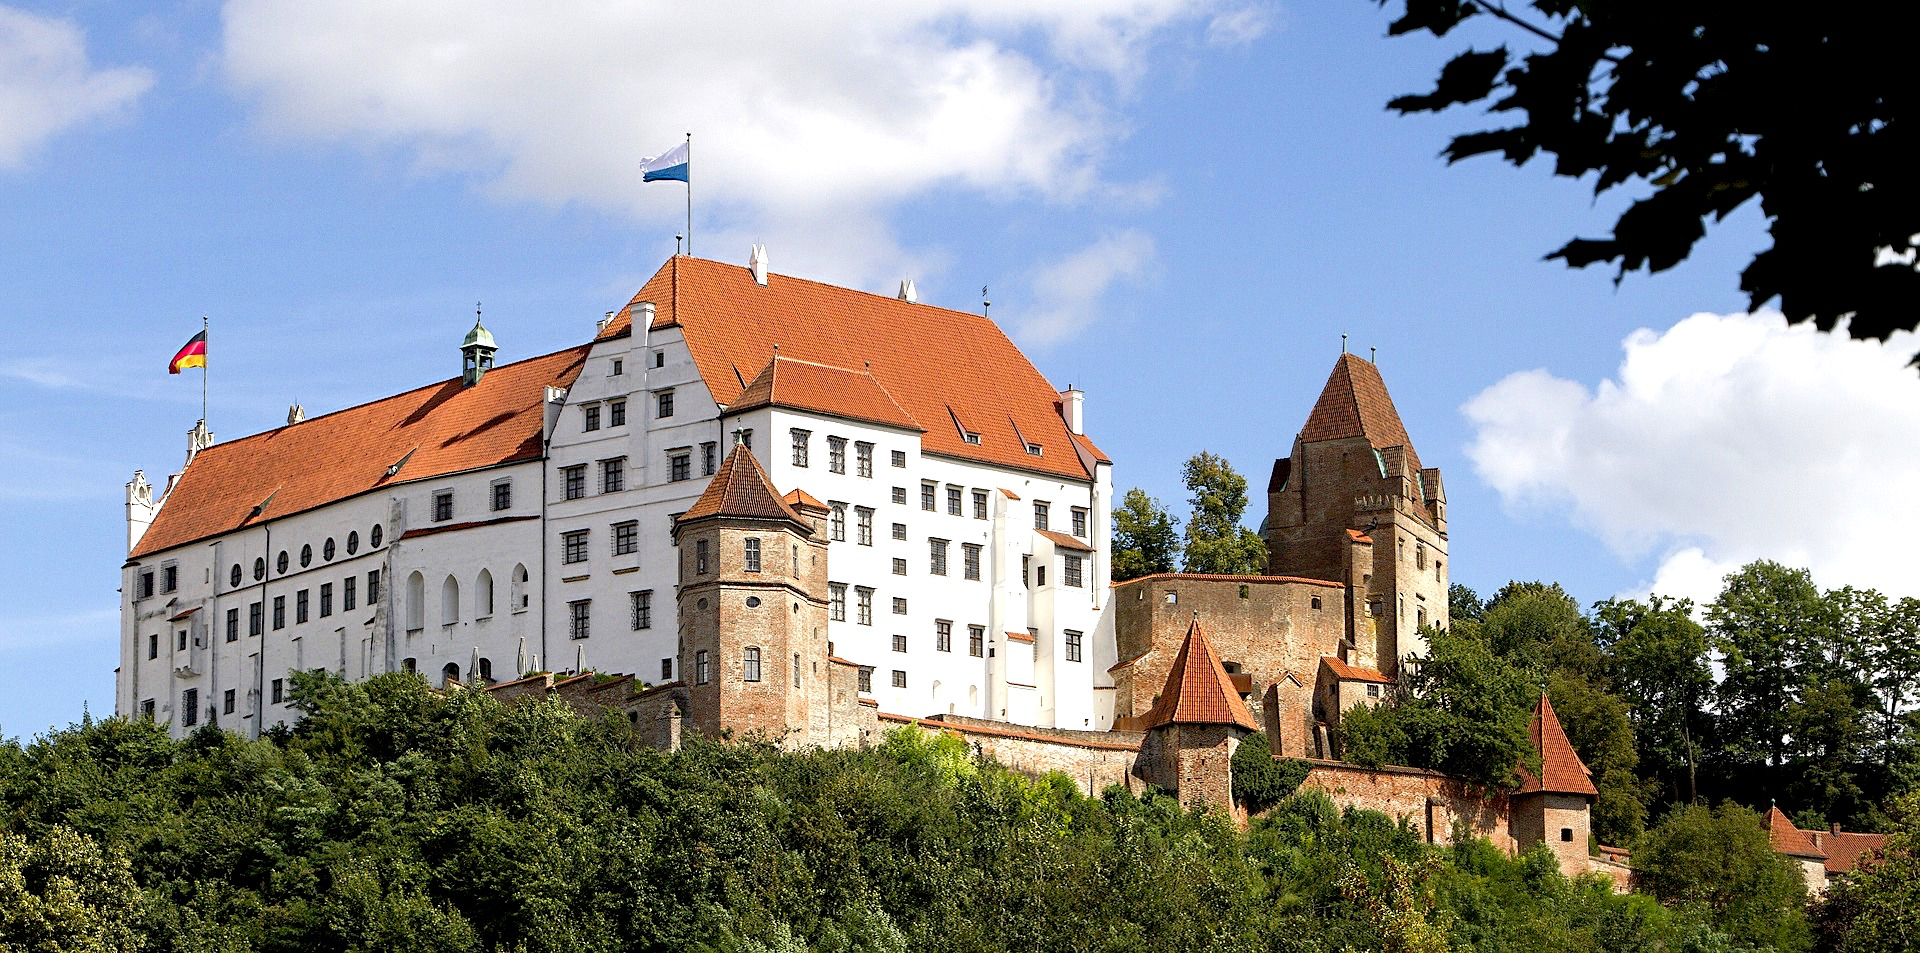 Trausnitz Castle, history trip, Sights in Germany, daytrip with local